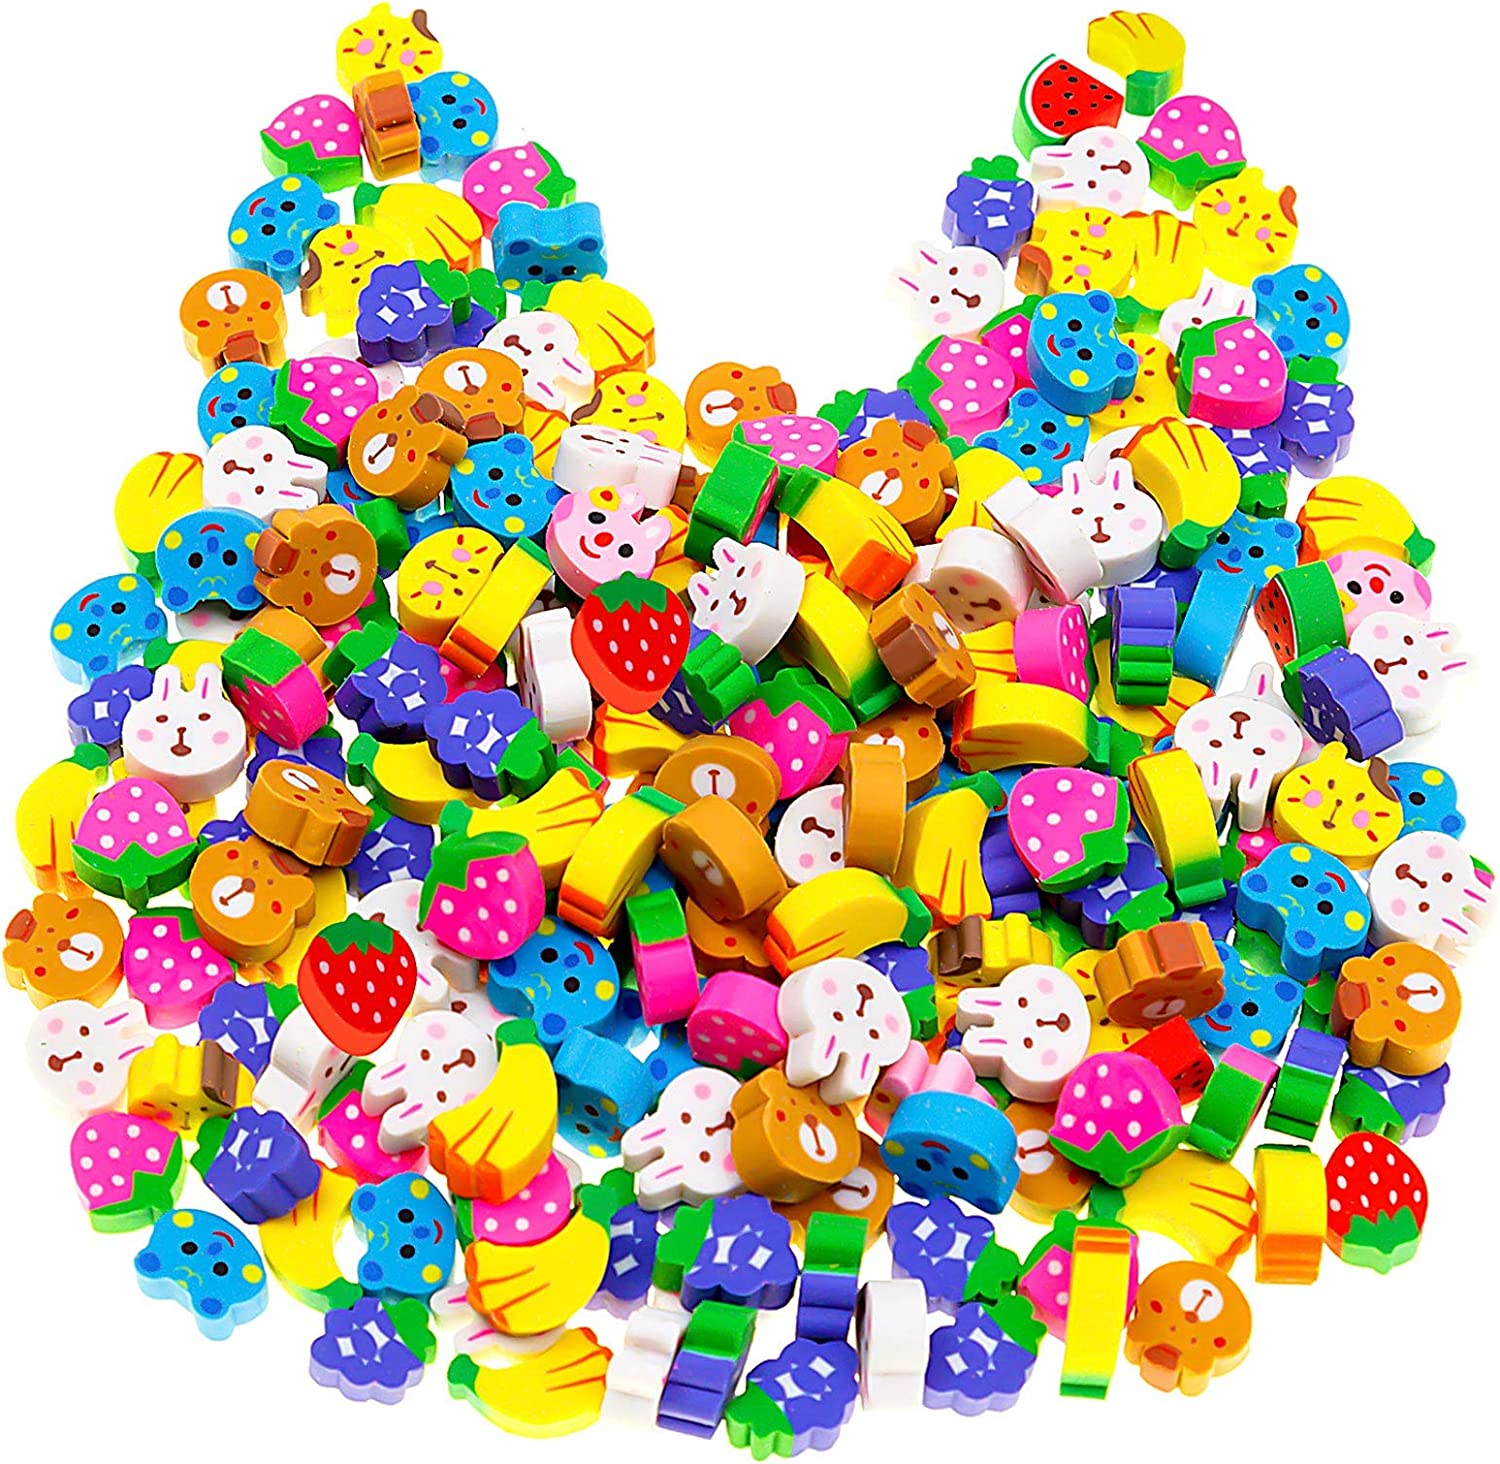 240 Pack Mini Fruit Animal Erasers for Kids, Funny 3D Erasers Assortment, Cute Cat Rabbit Bear Banana Strawberry Grape Novelty Erasers for Birthday Party Supplies, Kids Classroom Rewards and Prizes